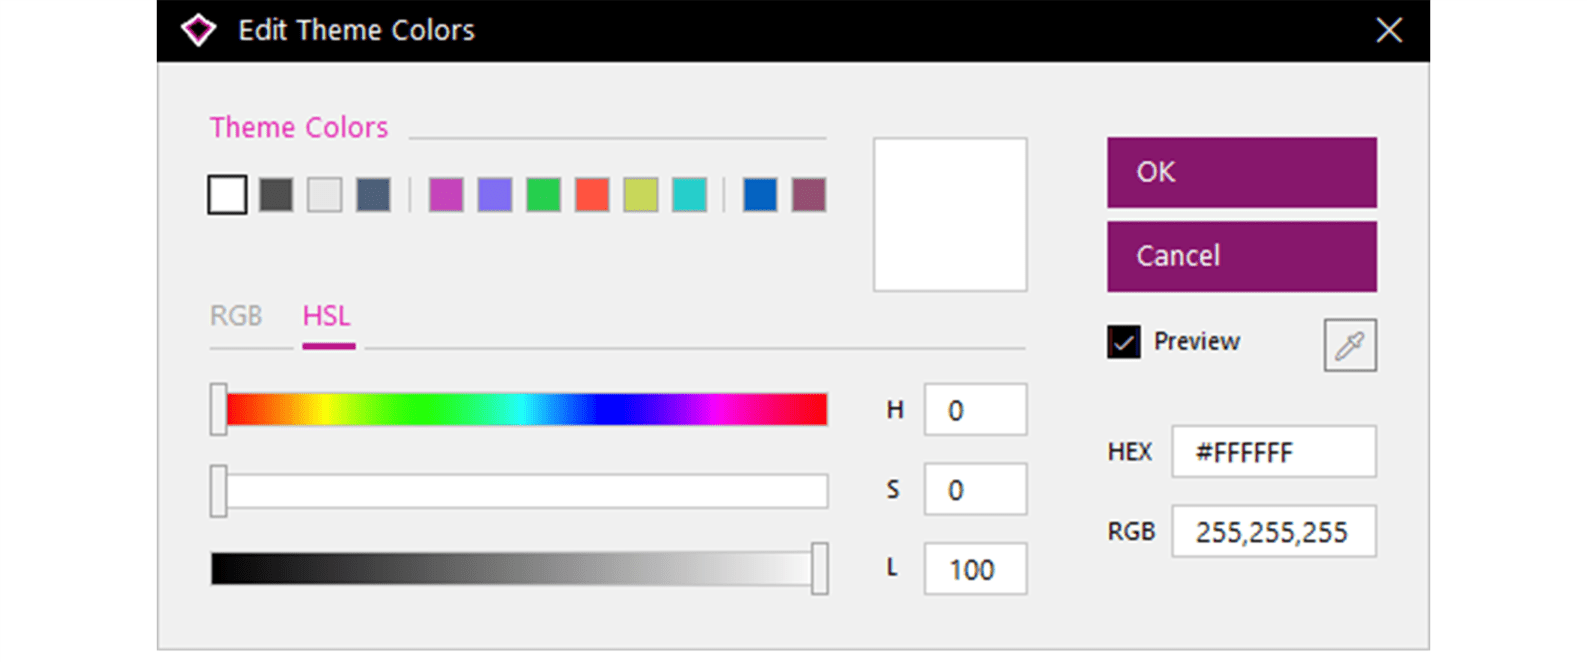 Screenshot of the Edit Theme Colors pop up window from our PowerPoint add-in BrightSlide